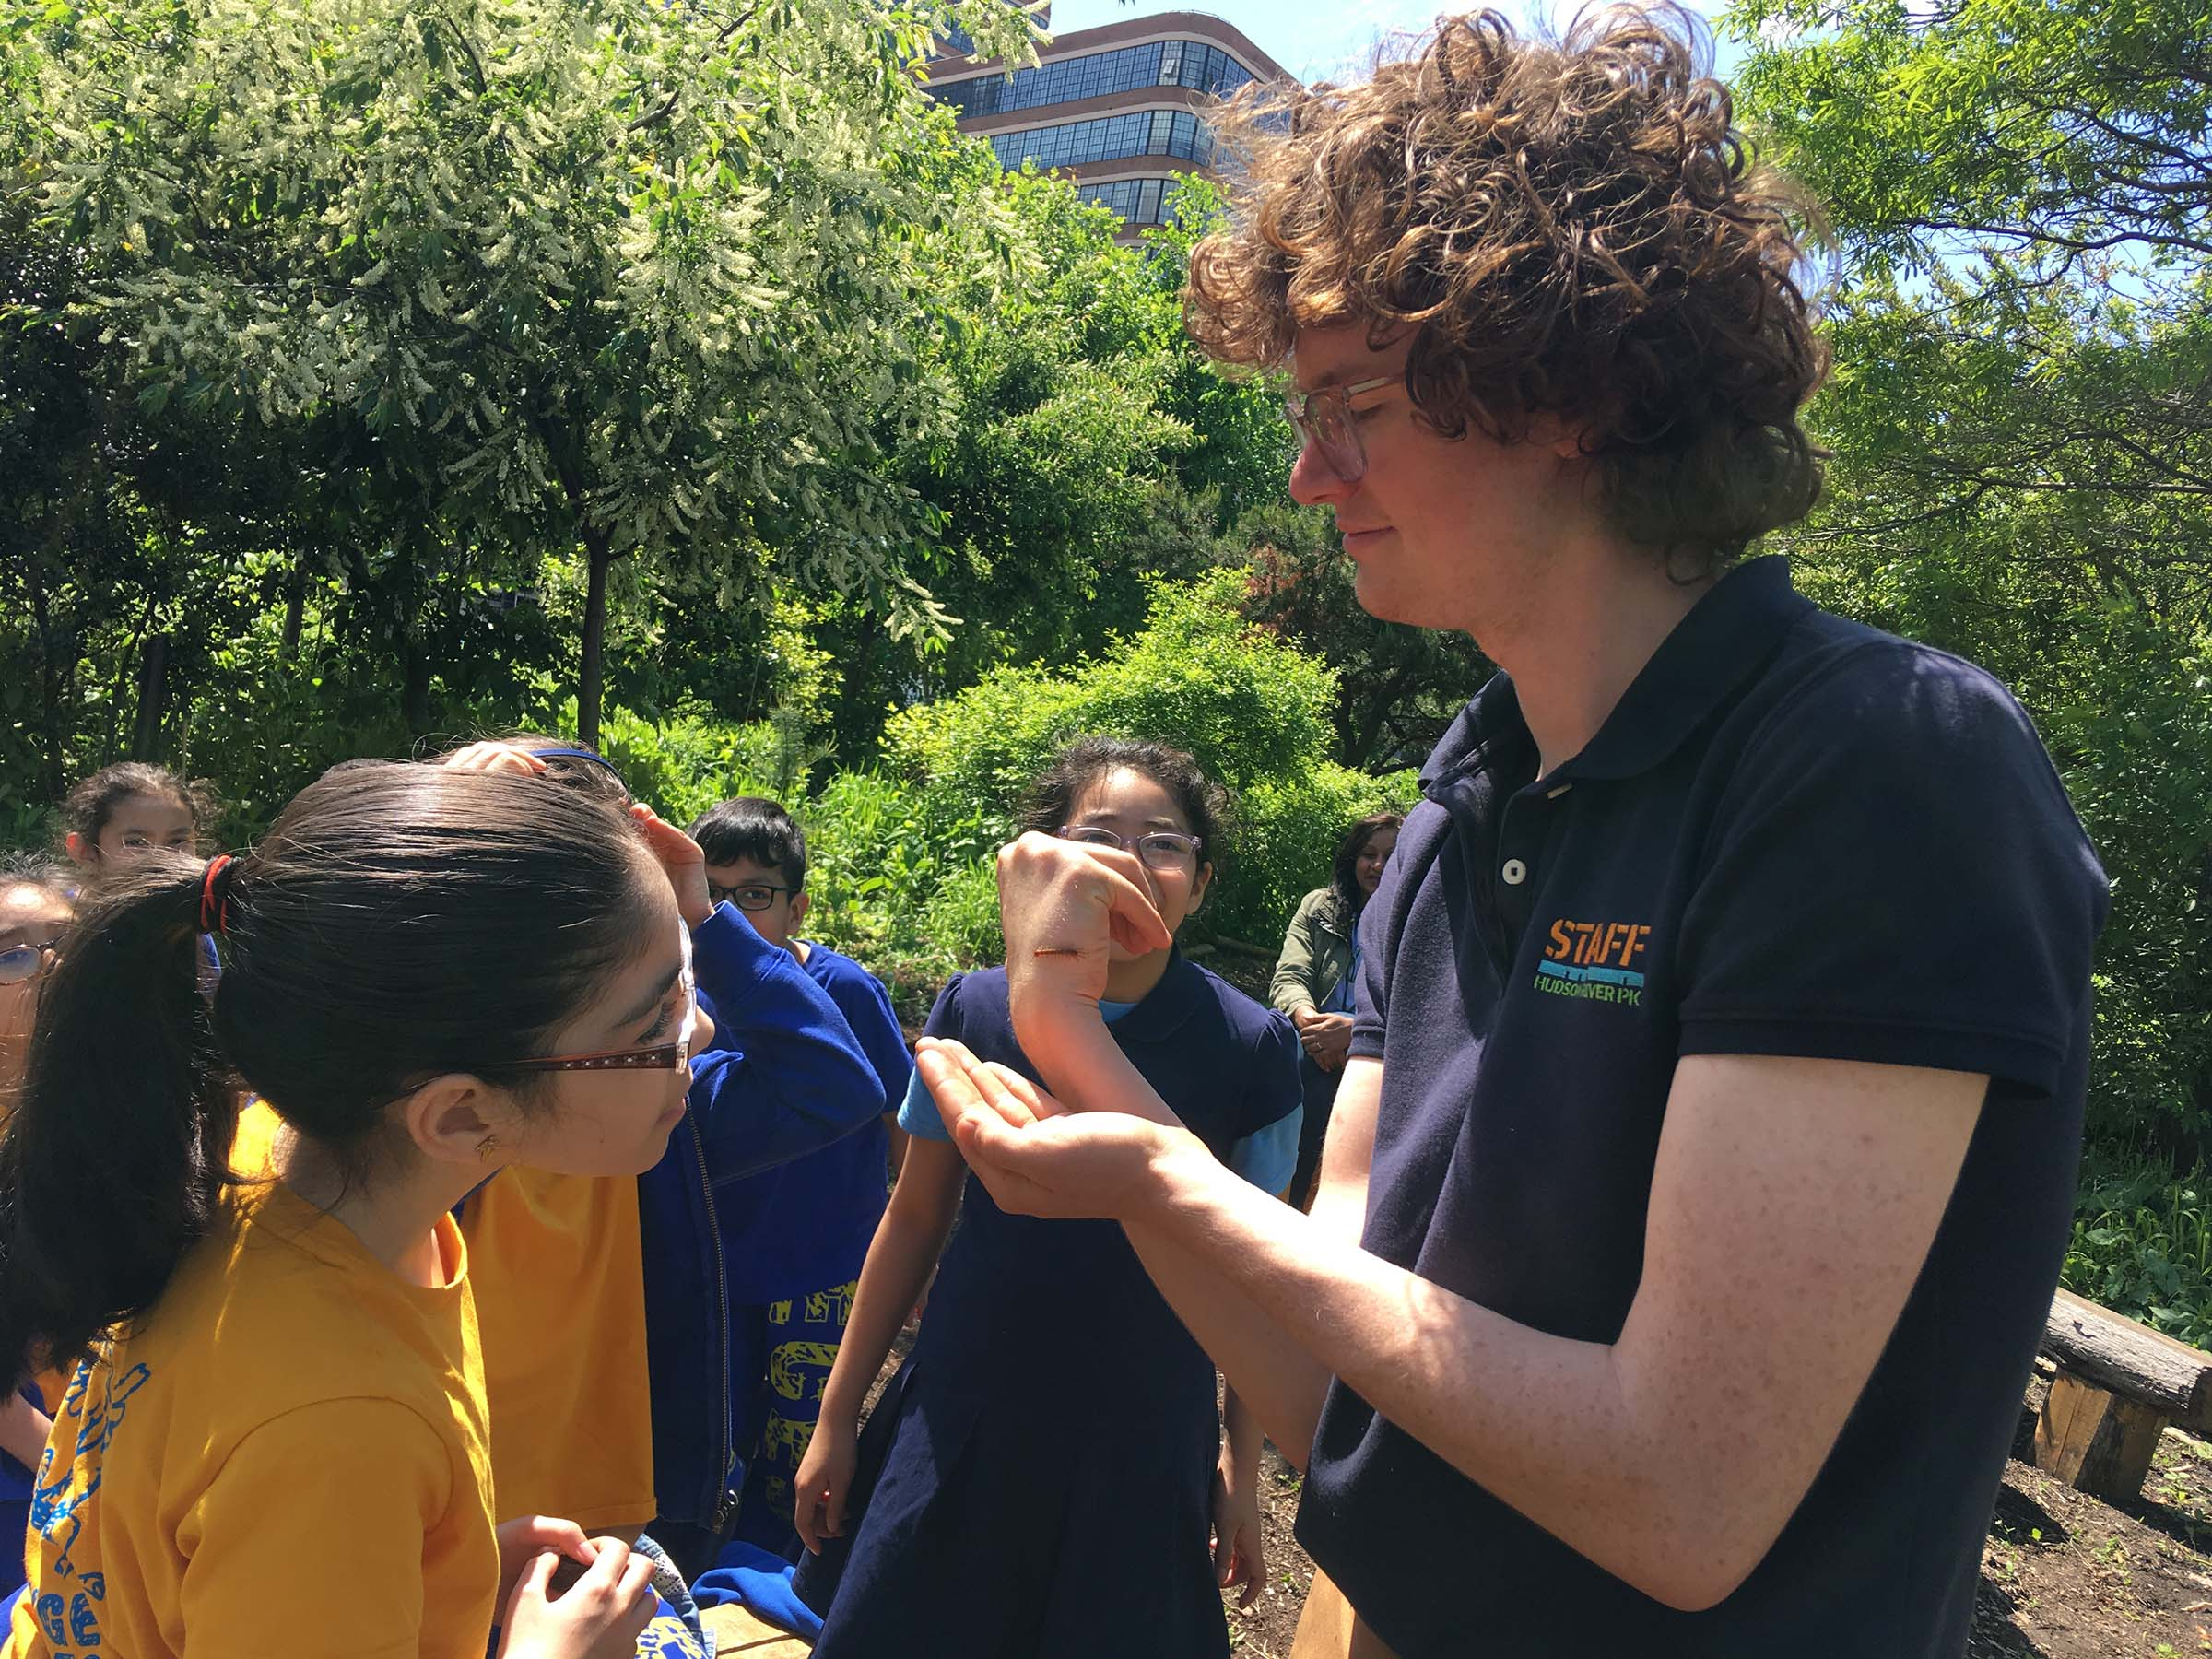 A Park educator shows an insect that landed on his hand